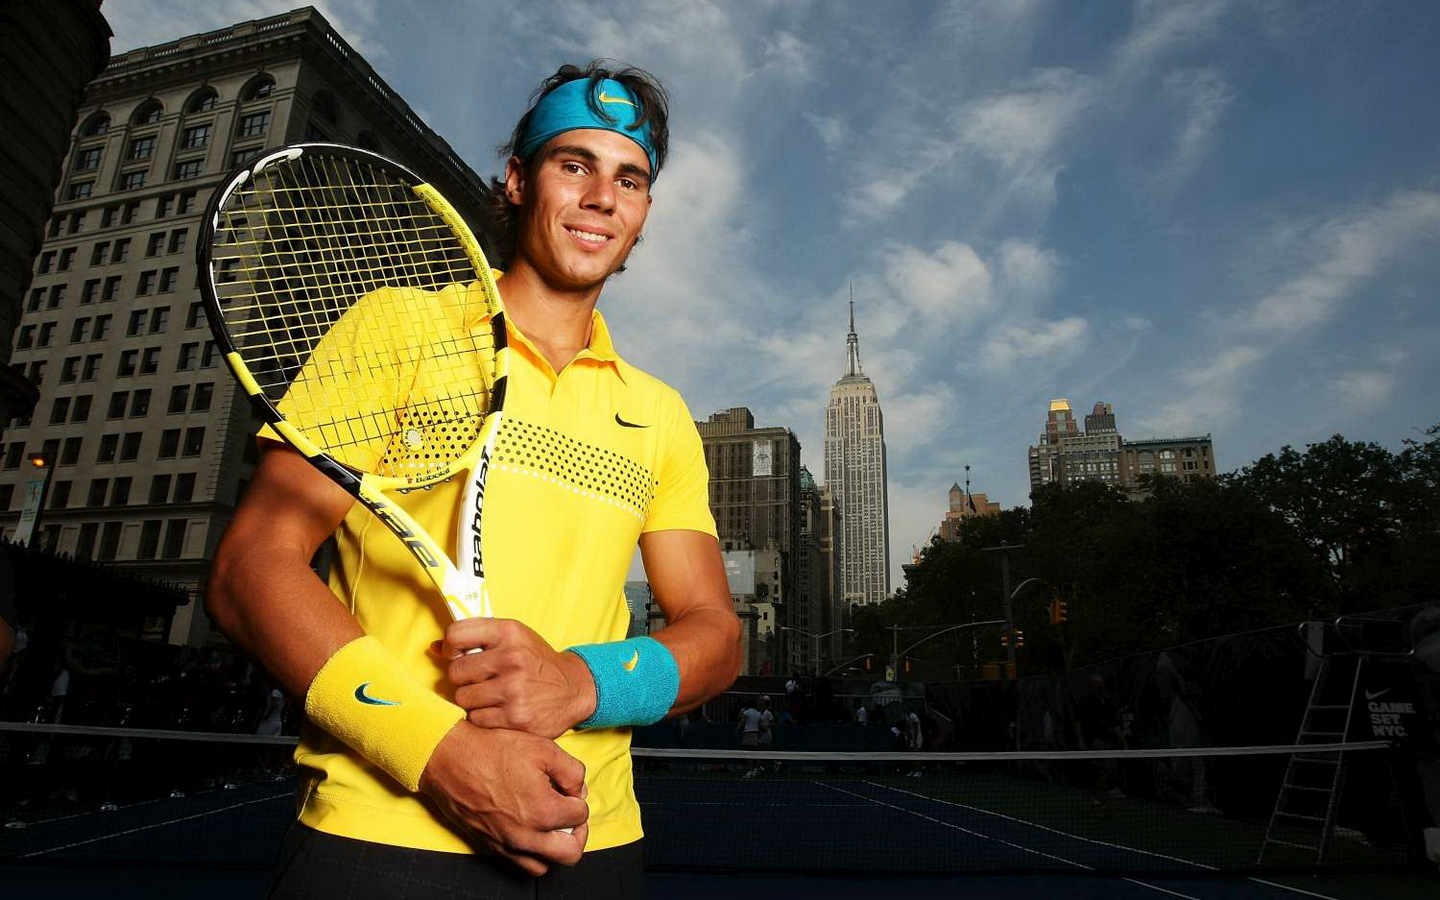 Rafael Nadal Hd Wallpaper Empire State Building 1440x900 Wallpaper Teahub Io